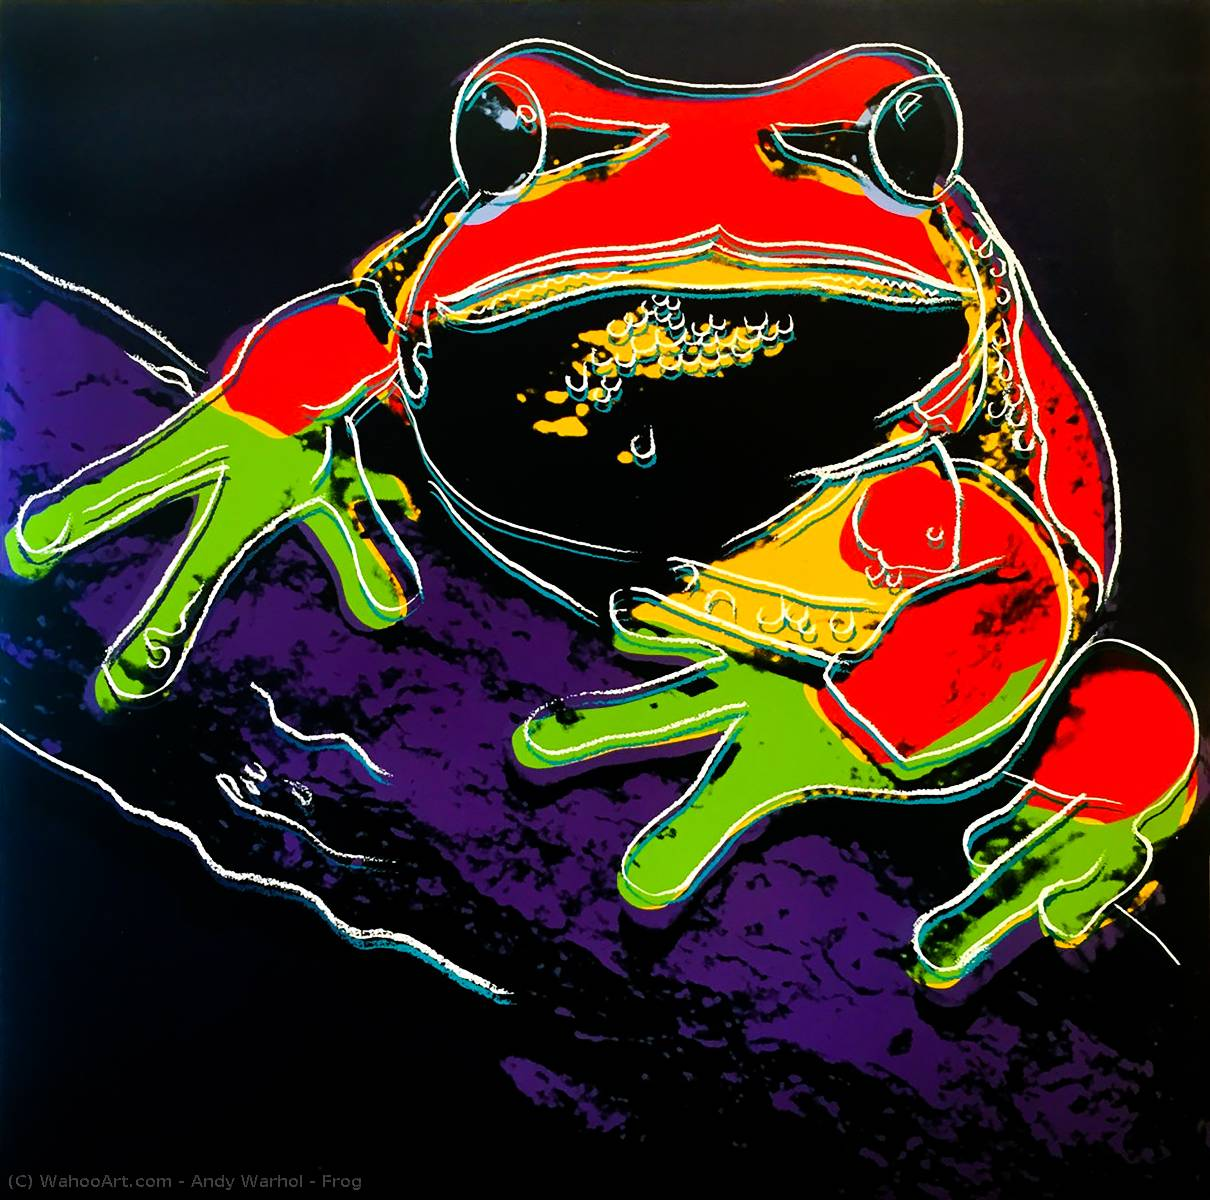 Order Reproductions Pop Art : Frog by Andy Warhol | BuyPopArt.com